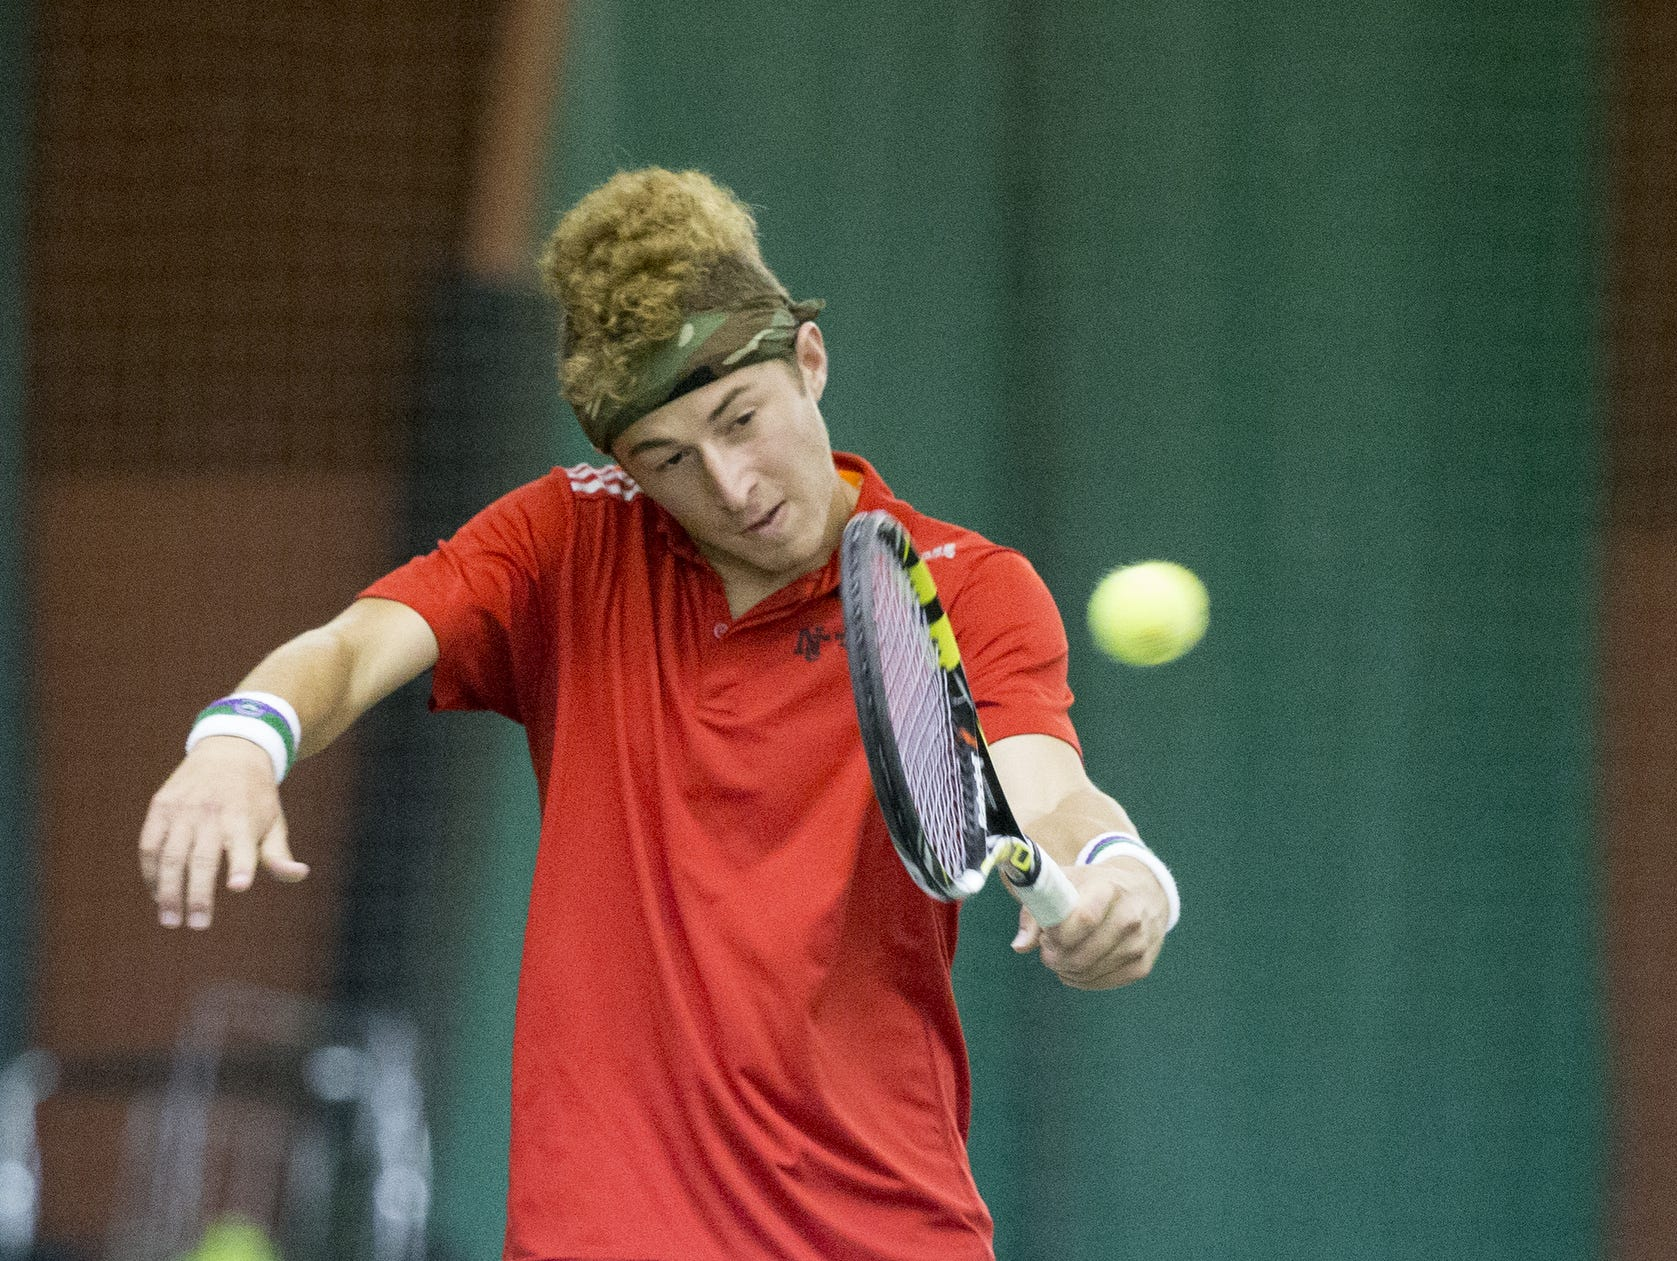 Jonathan Kroot of North Central High School, returns a shot during the third seed singles match, IHSAA Boys Team Tennis State Finals, Indianapolis, Saturday, October 18, 2014.